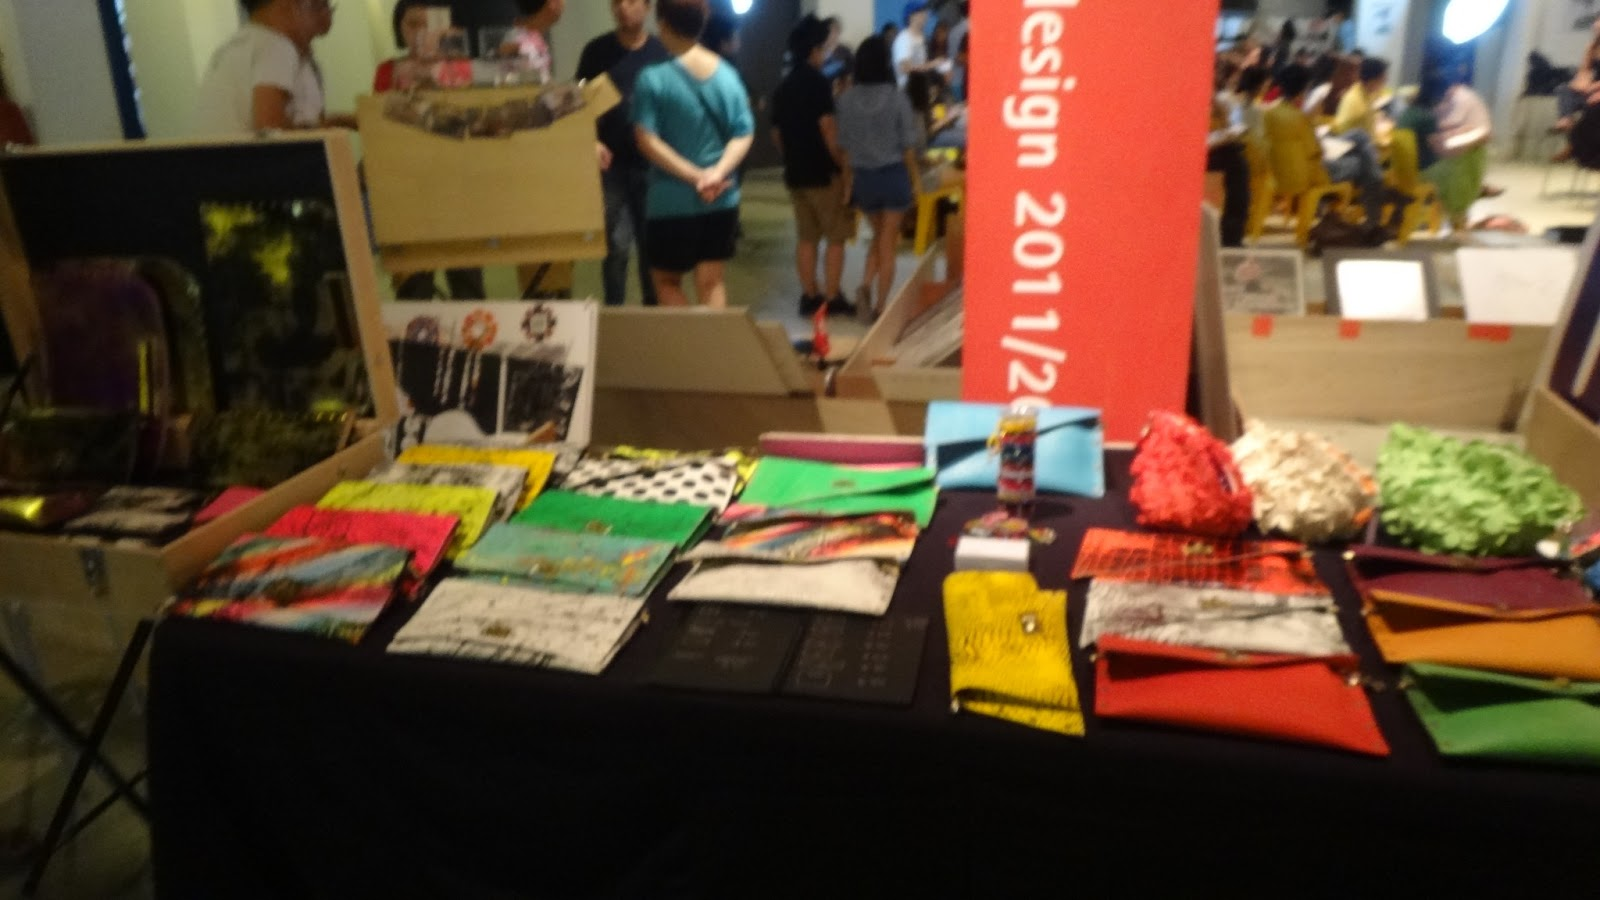 MAAD - Market for Artists and Designers, Maxwell Road, Singapore